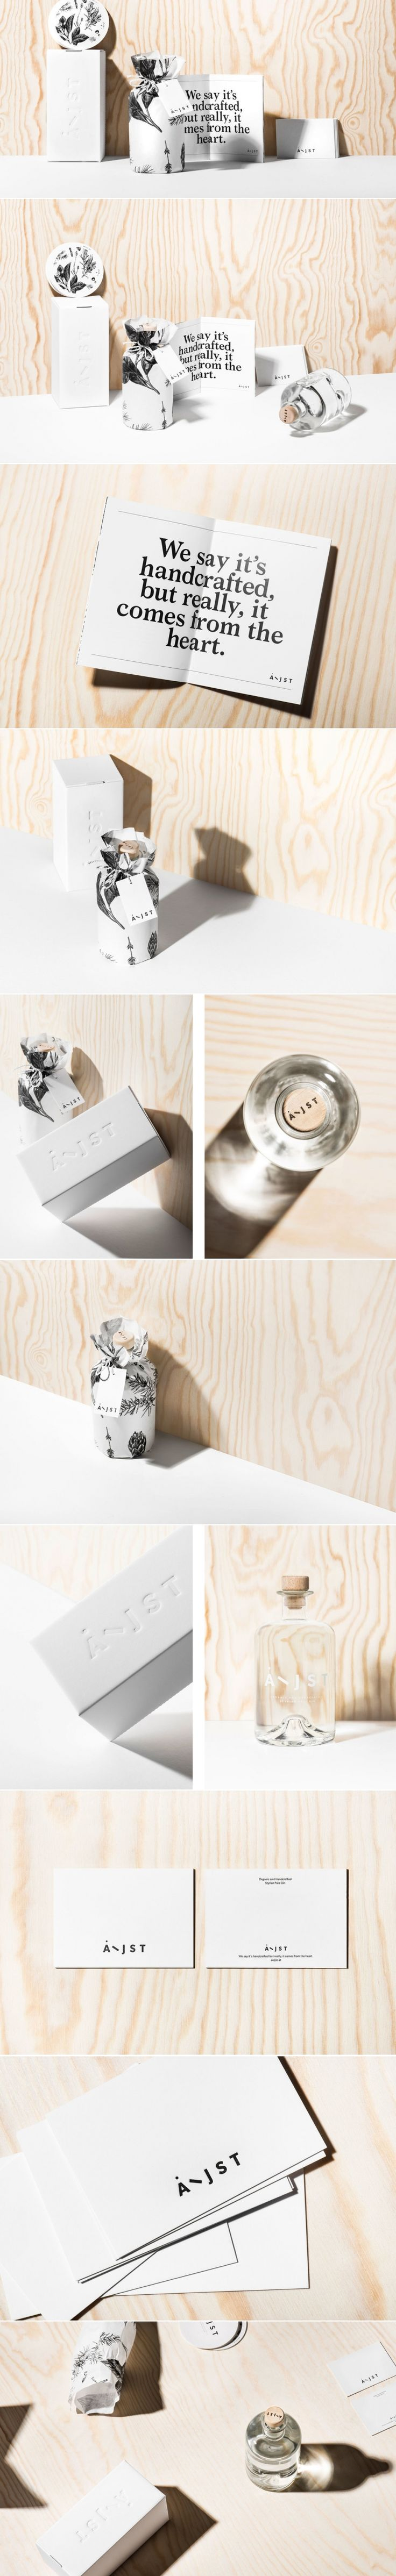 Aeijst Styrian Pale Gin — The Dieline | Packaging & Branding Design & Innovation News